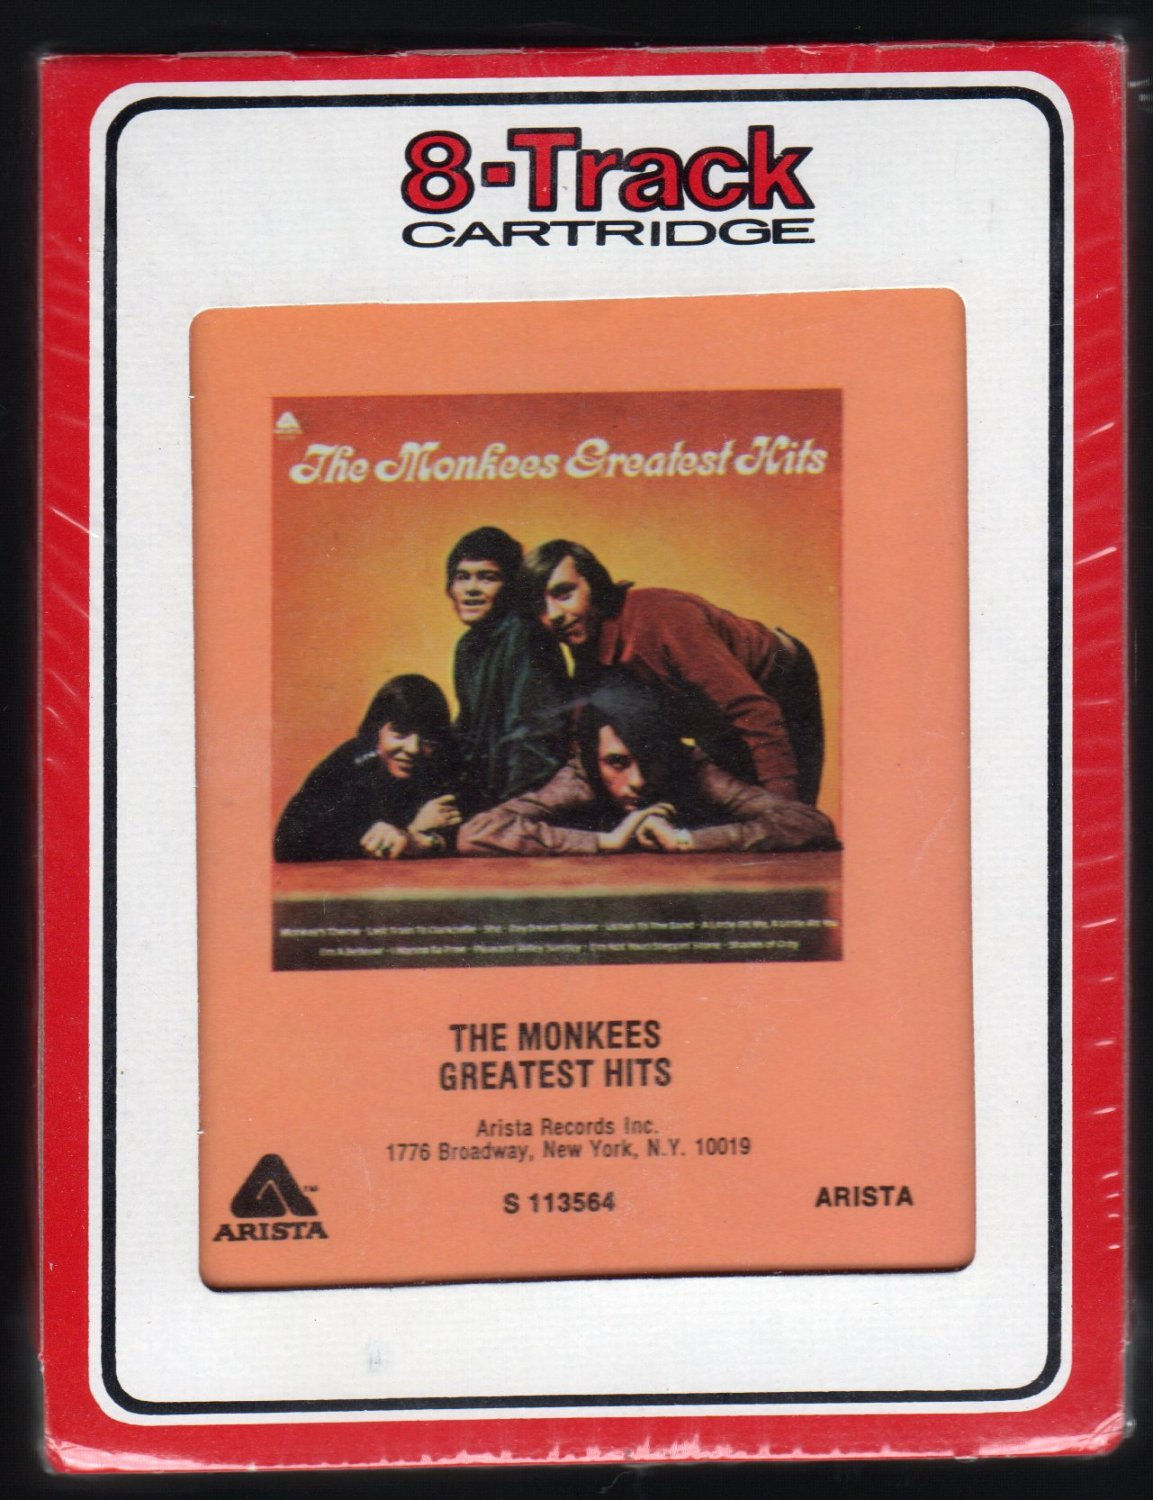 The Monkees - Greatest Hits 1972 RCA ARISTA 1985 Re-issue Sealed A4 8-TRACK TAPE